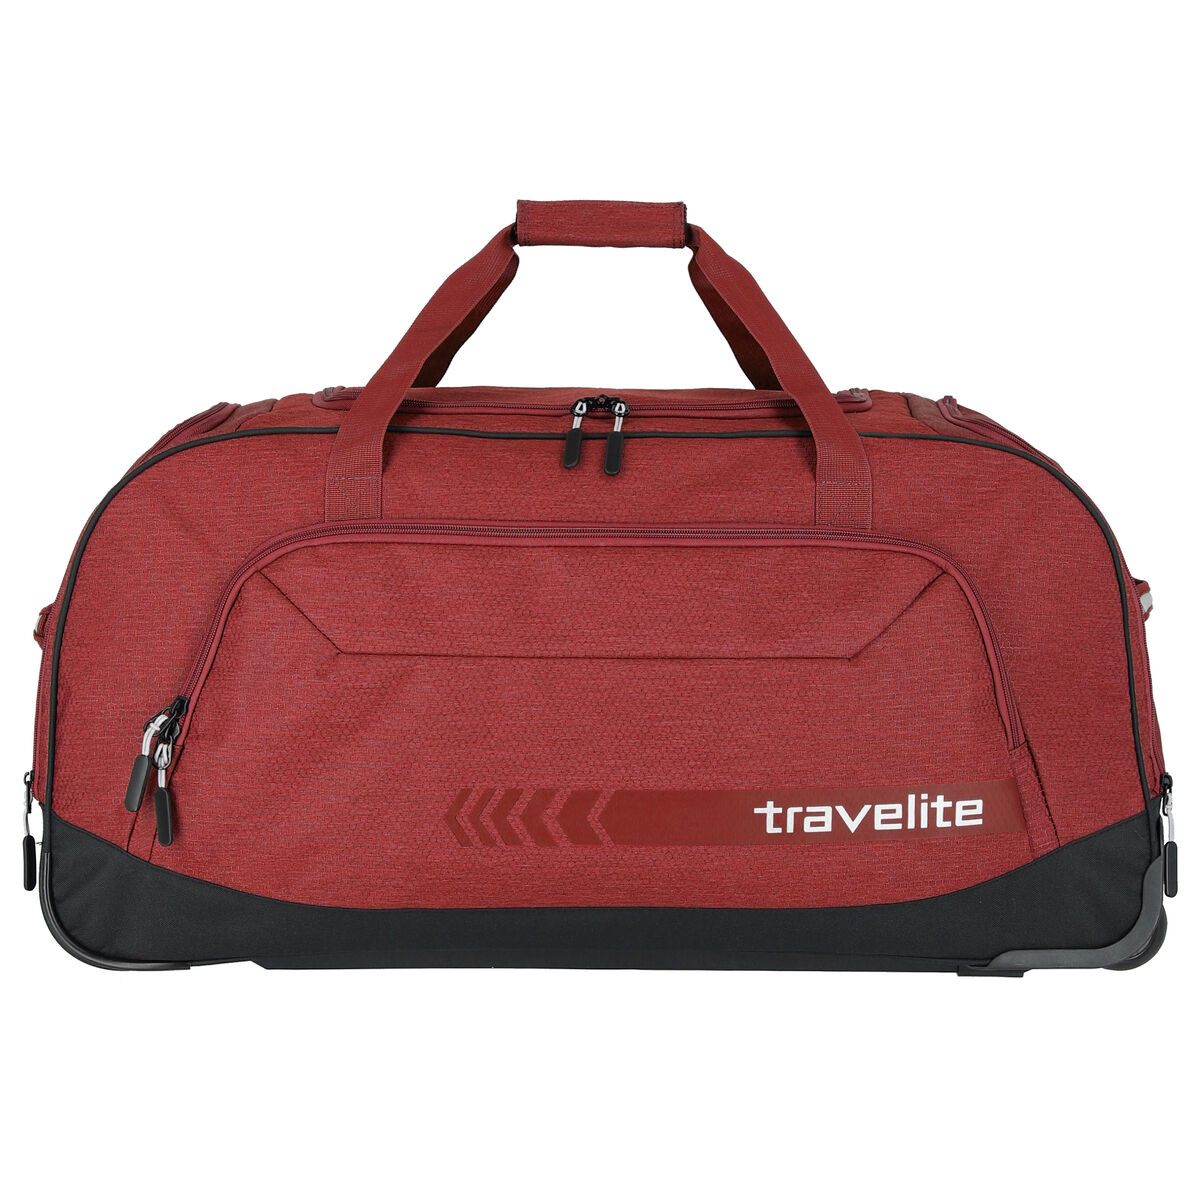 Travelite trolley leisure bag XL 120 L anthracite or red